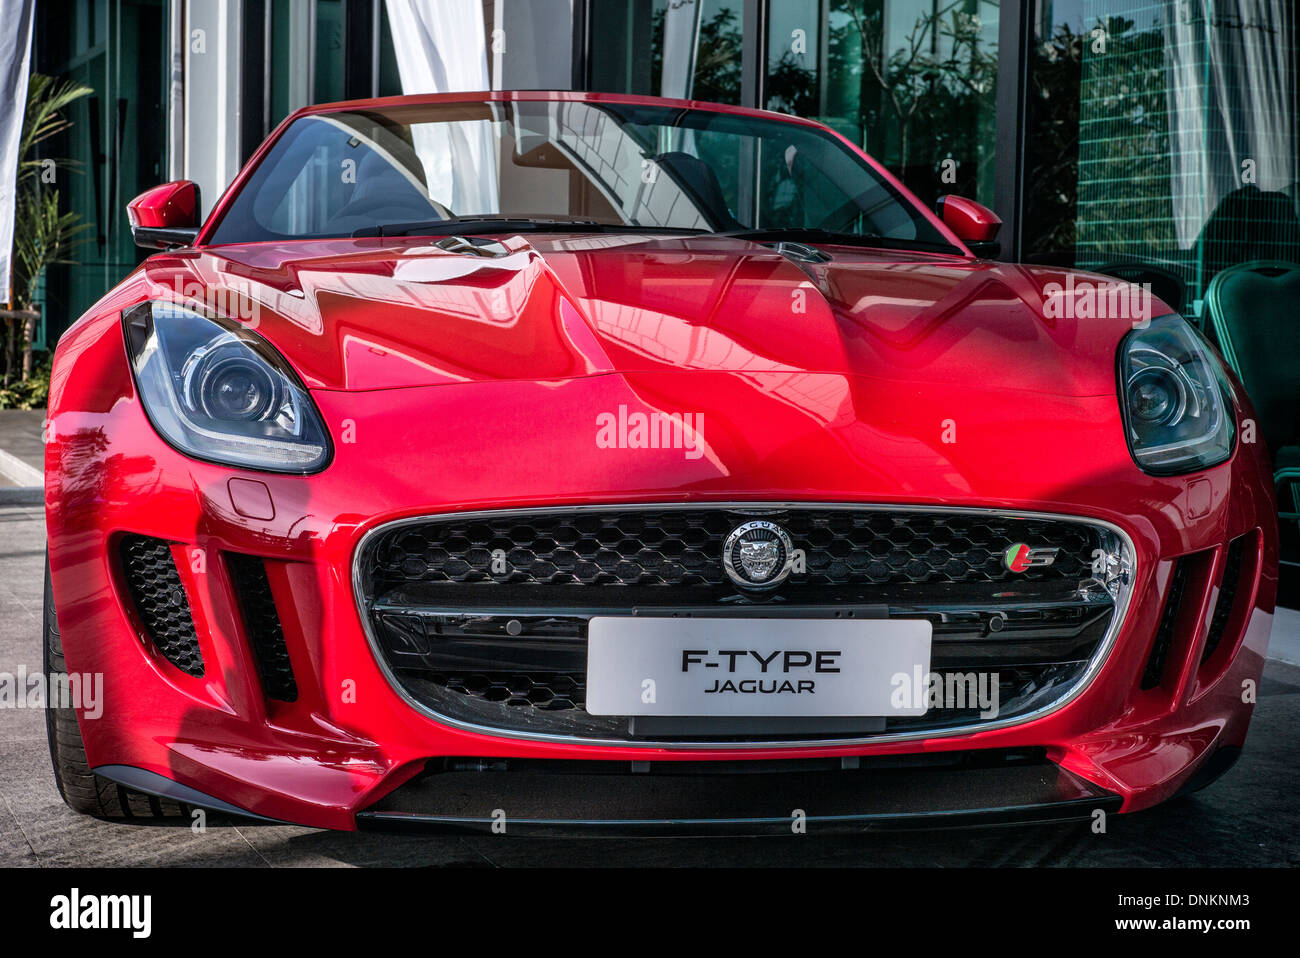 Front View Of A Red Jaguar F Type British Convertible Sports Car In